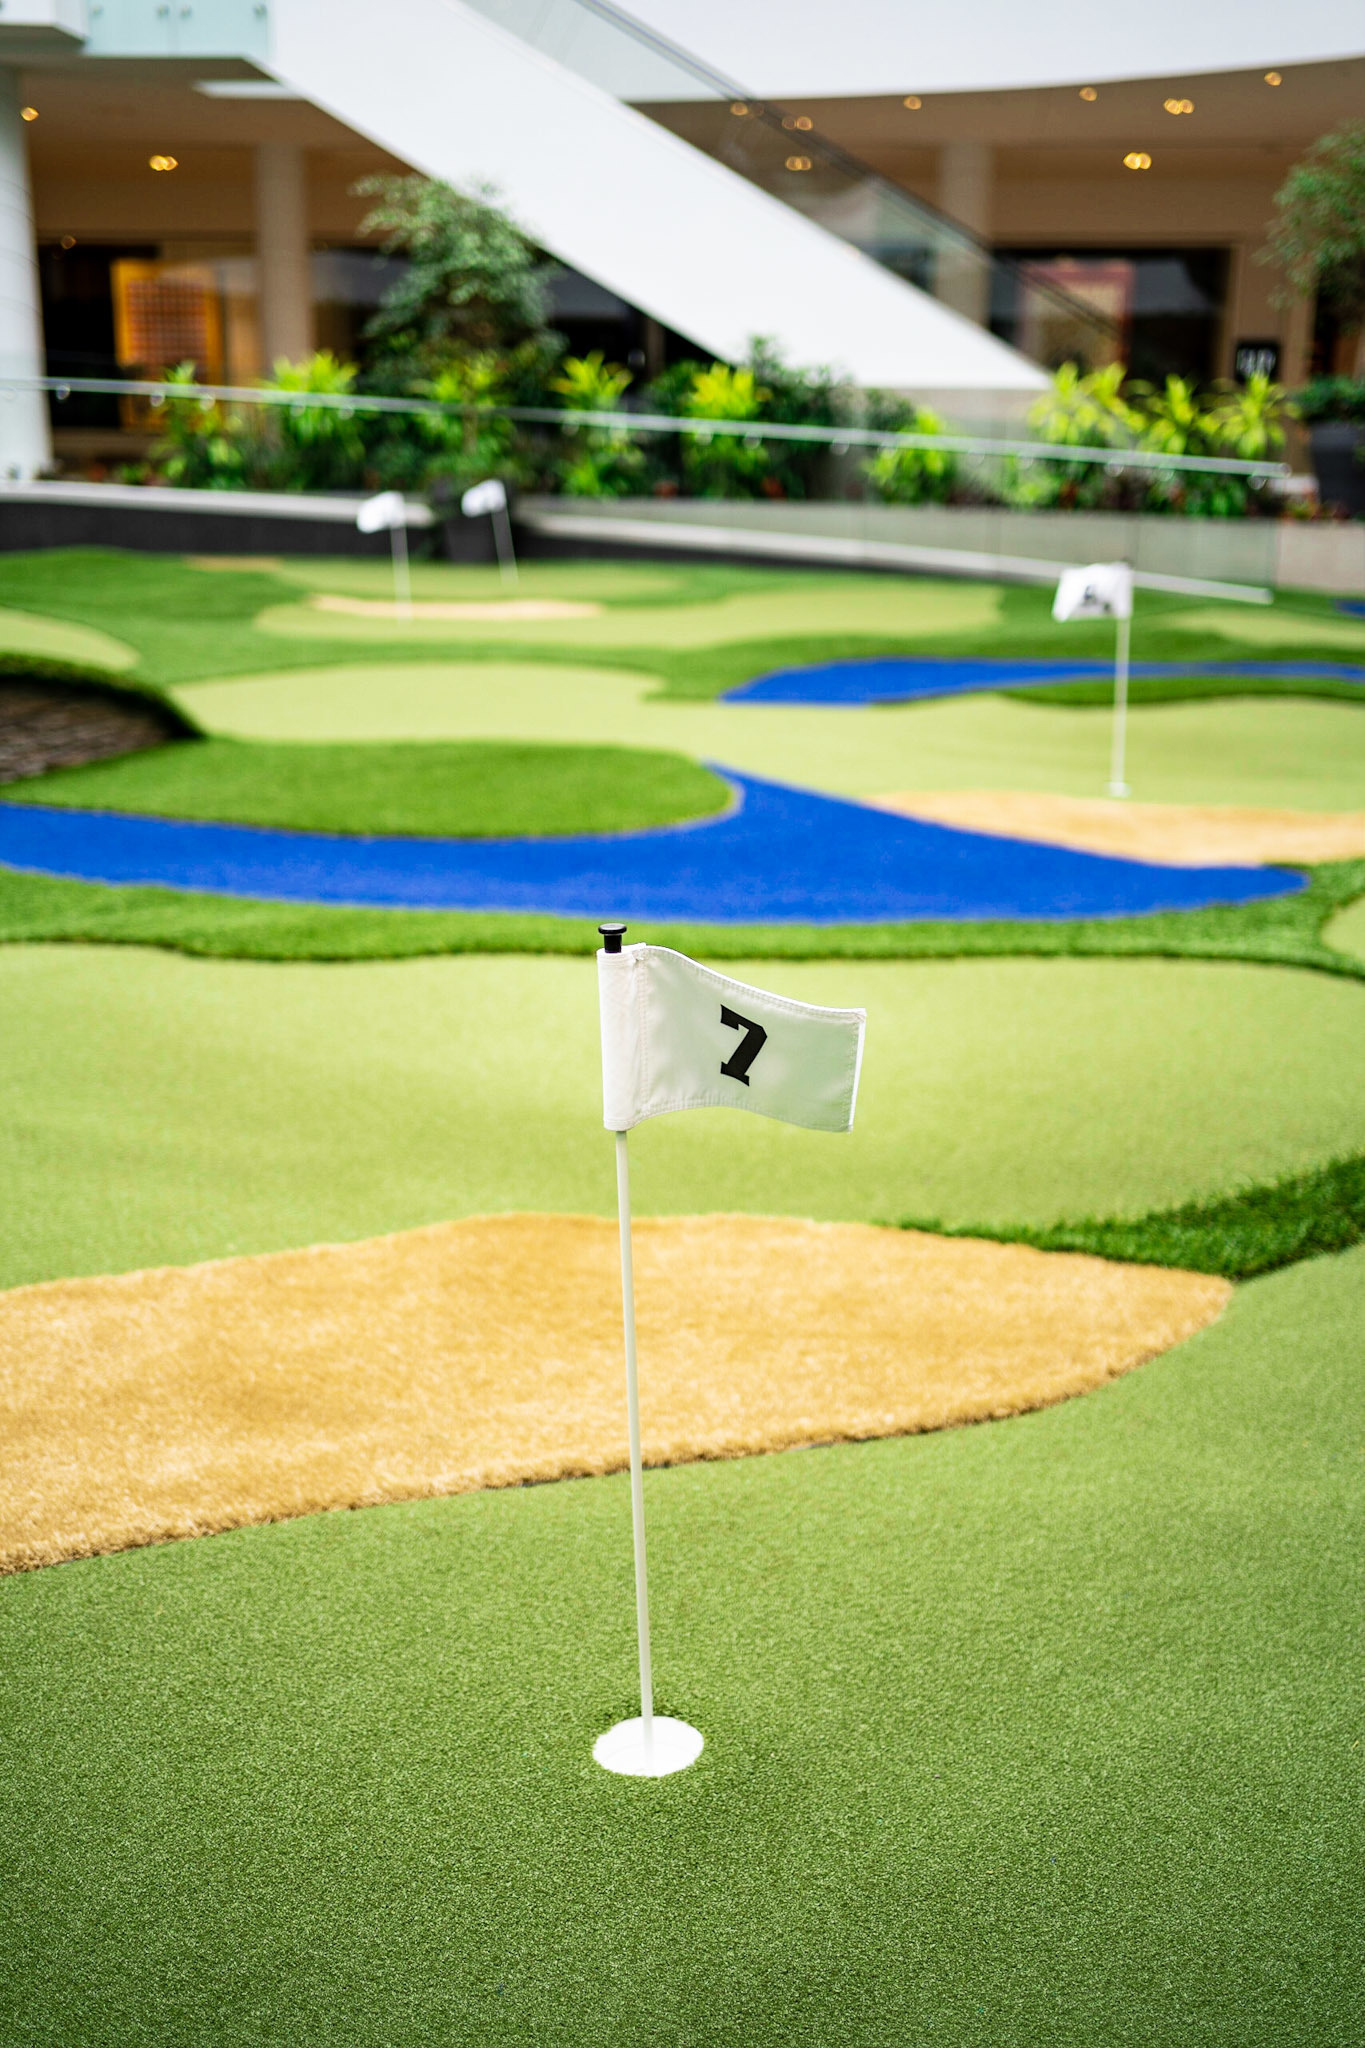 Putting green in mall